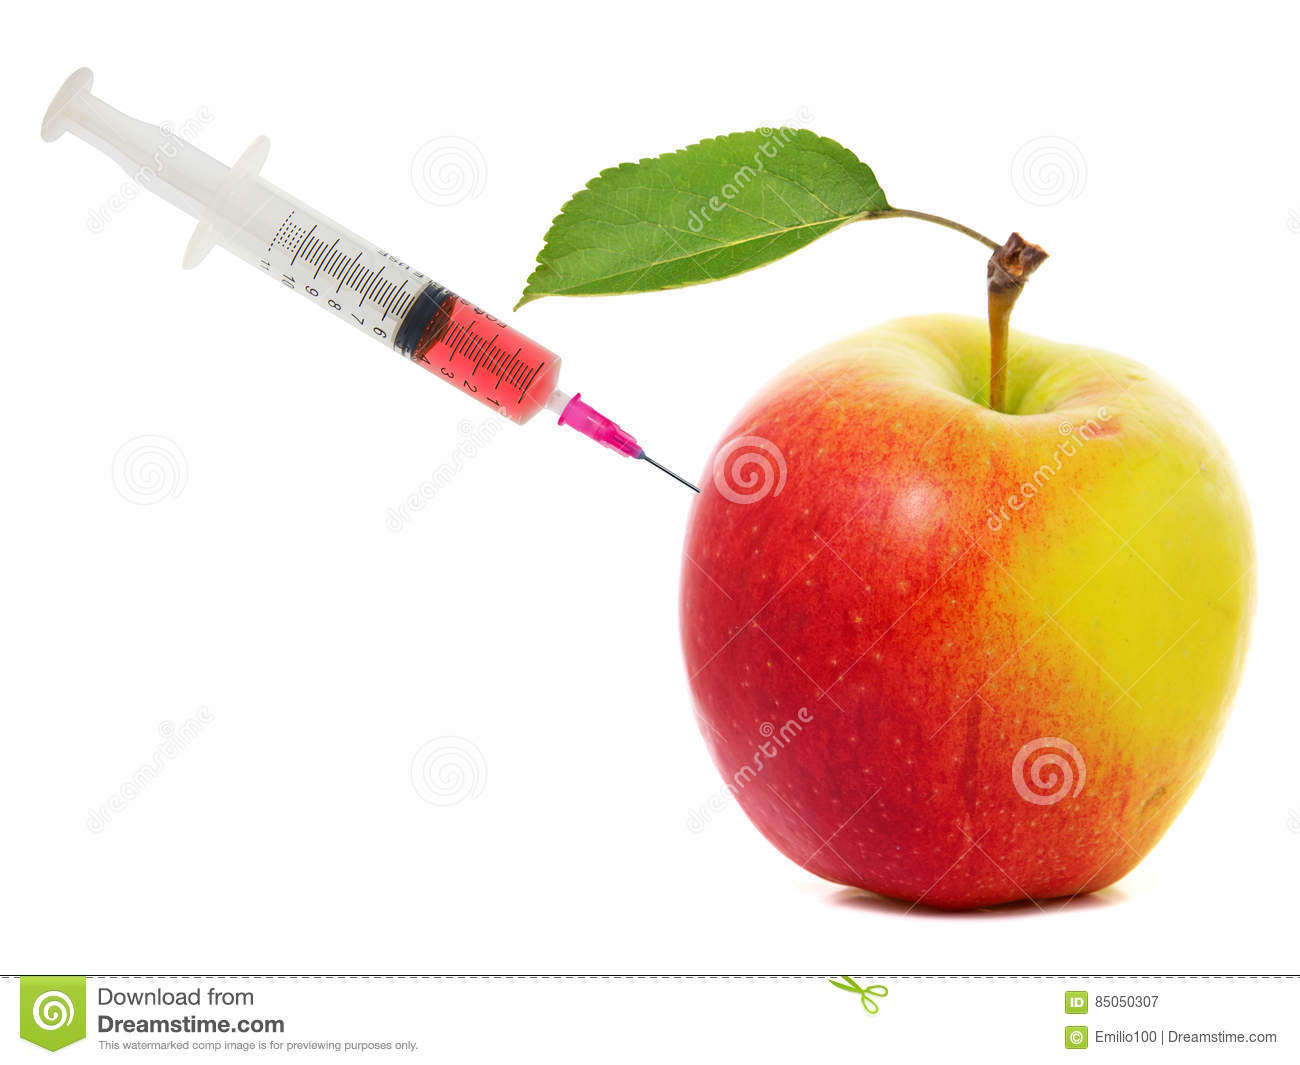 apple stuck with syringe concept of genetic modification of fruits